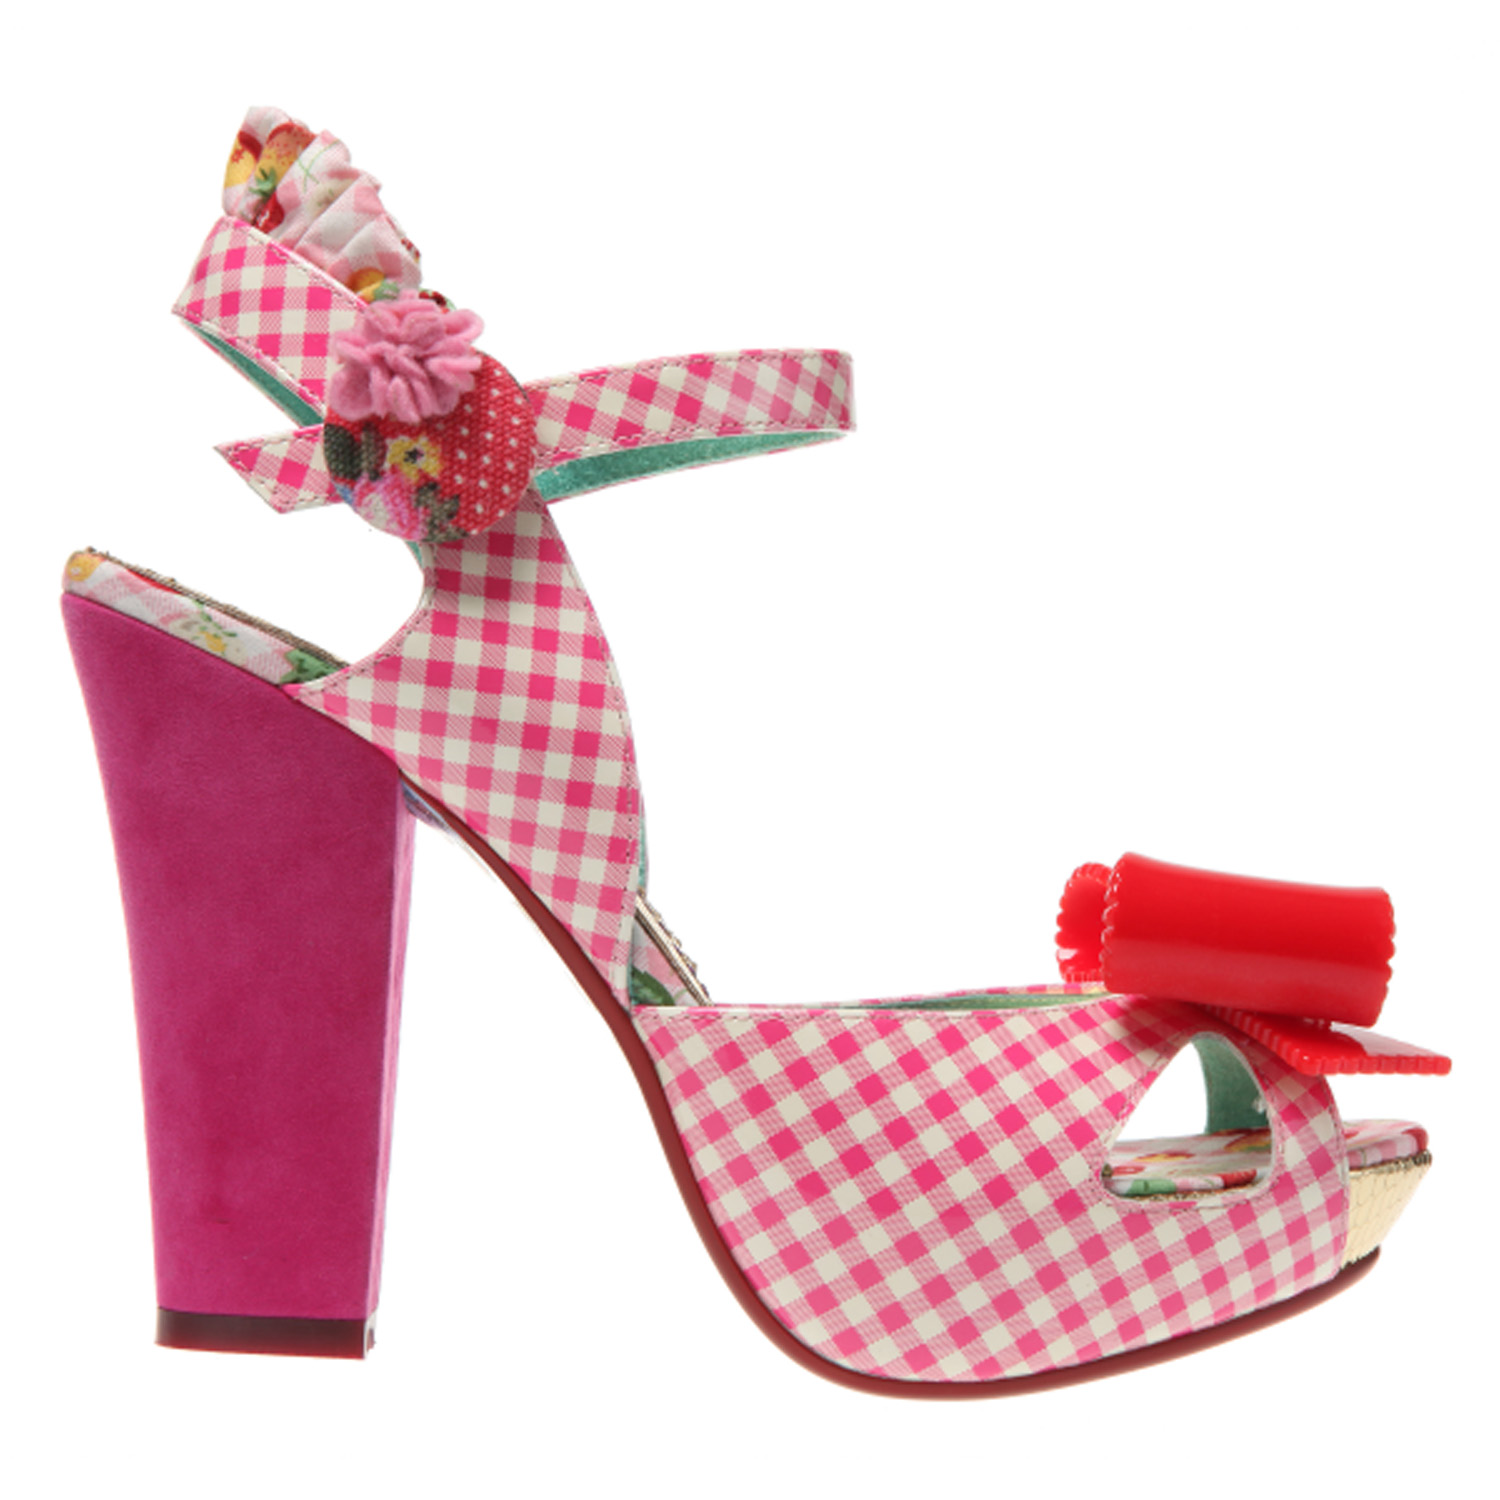 IRREGULAR-CHOICE-LOVE-BUG-PINK-GINGHAM-ROCKABILLY-KITSCH-VINTAGE-HEELS-SANDALS